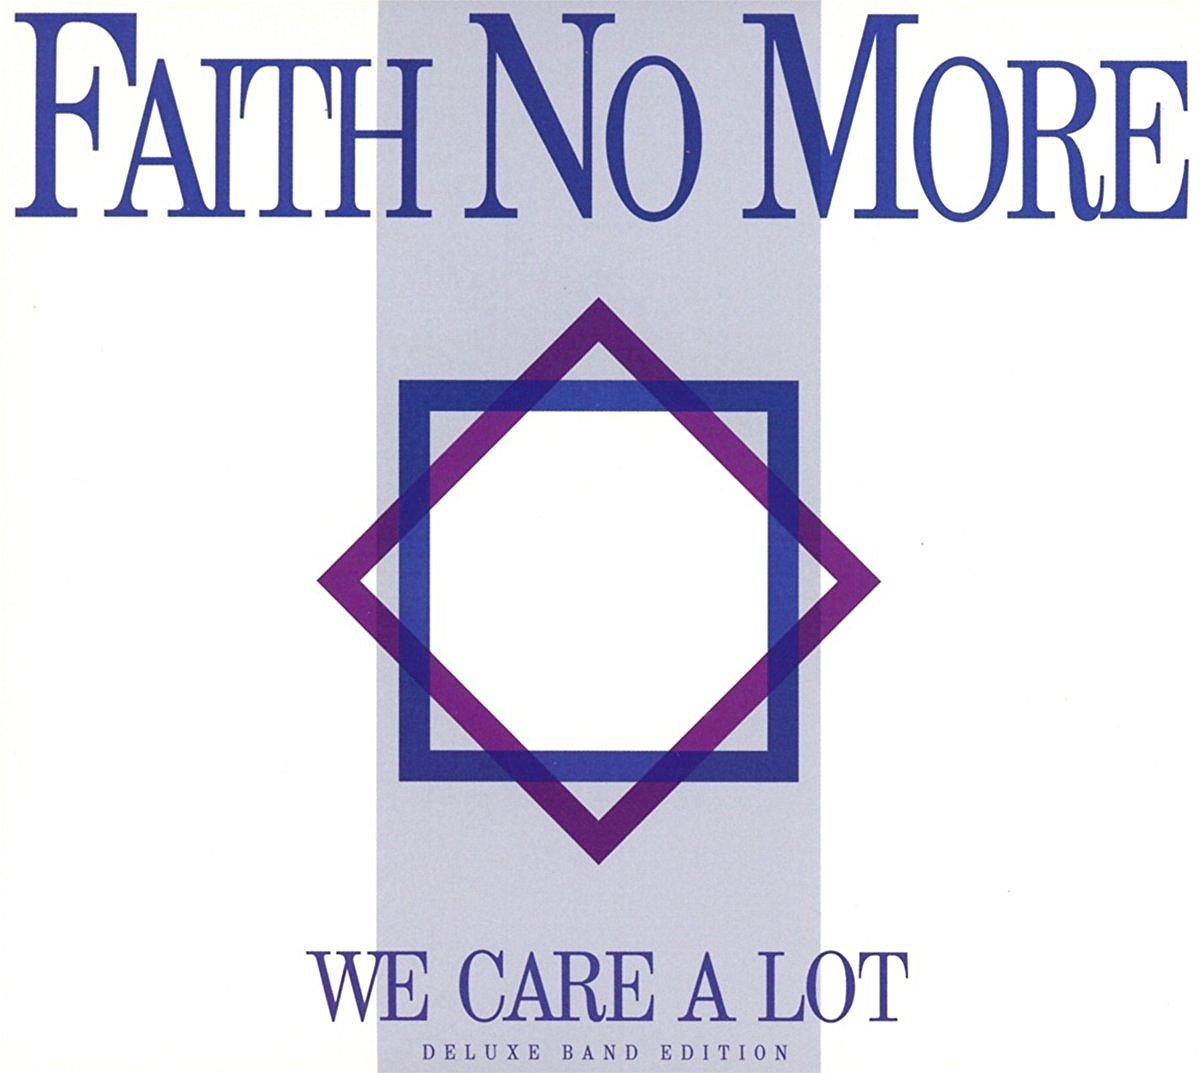 catalog 10 16 FaithNomore